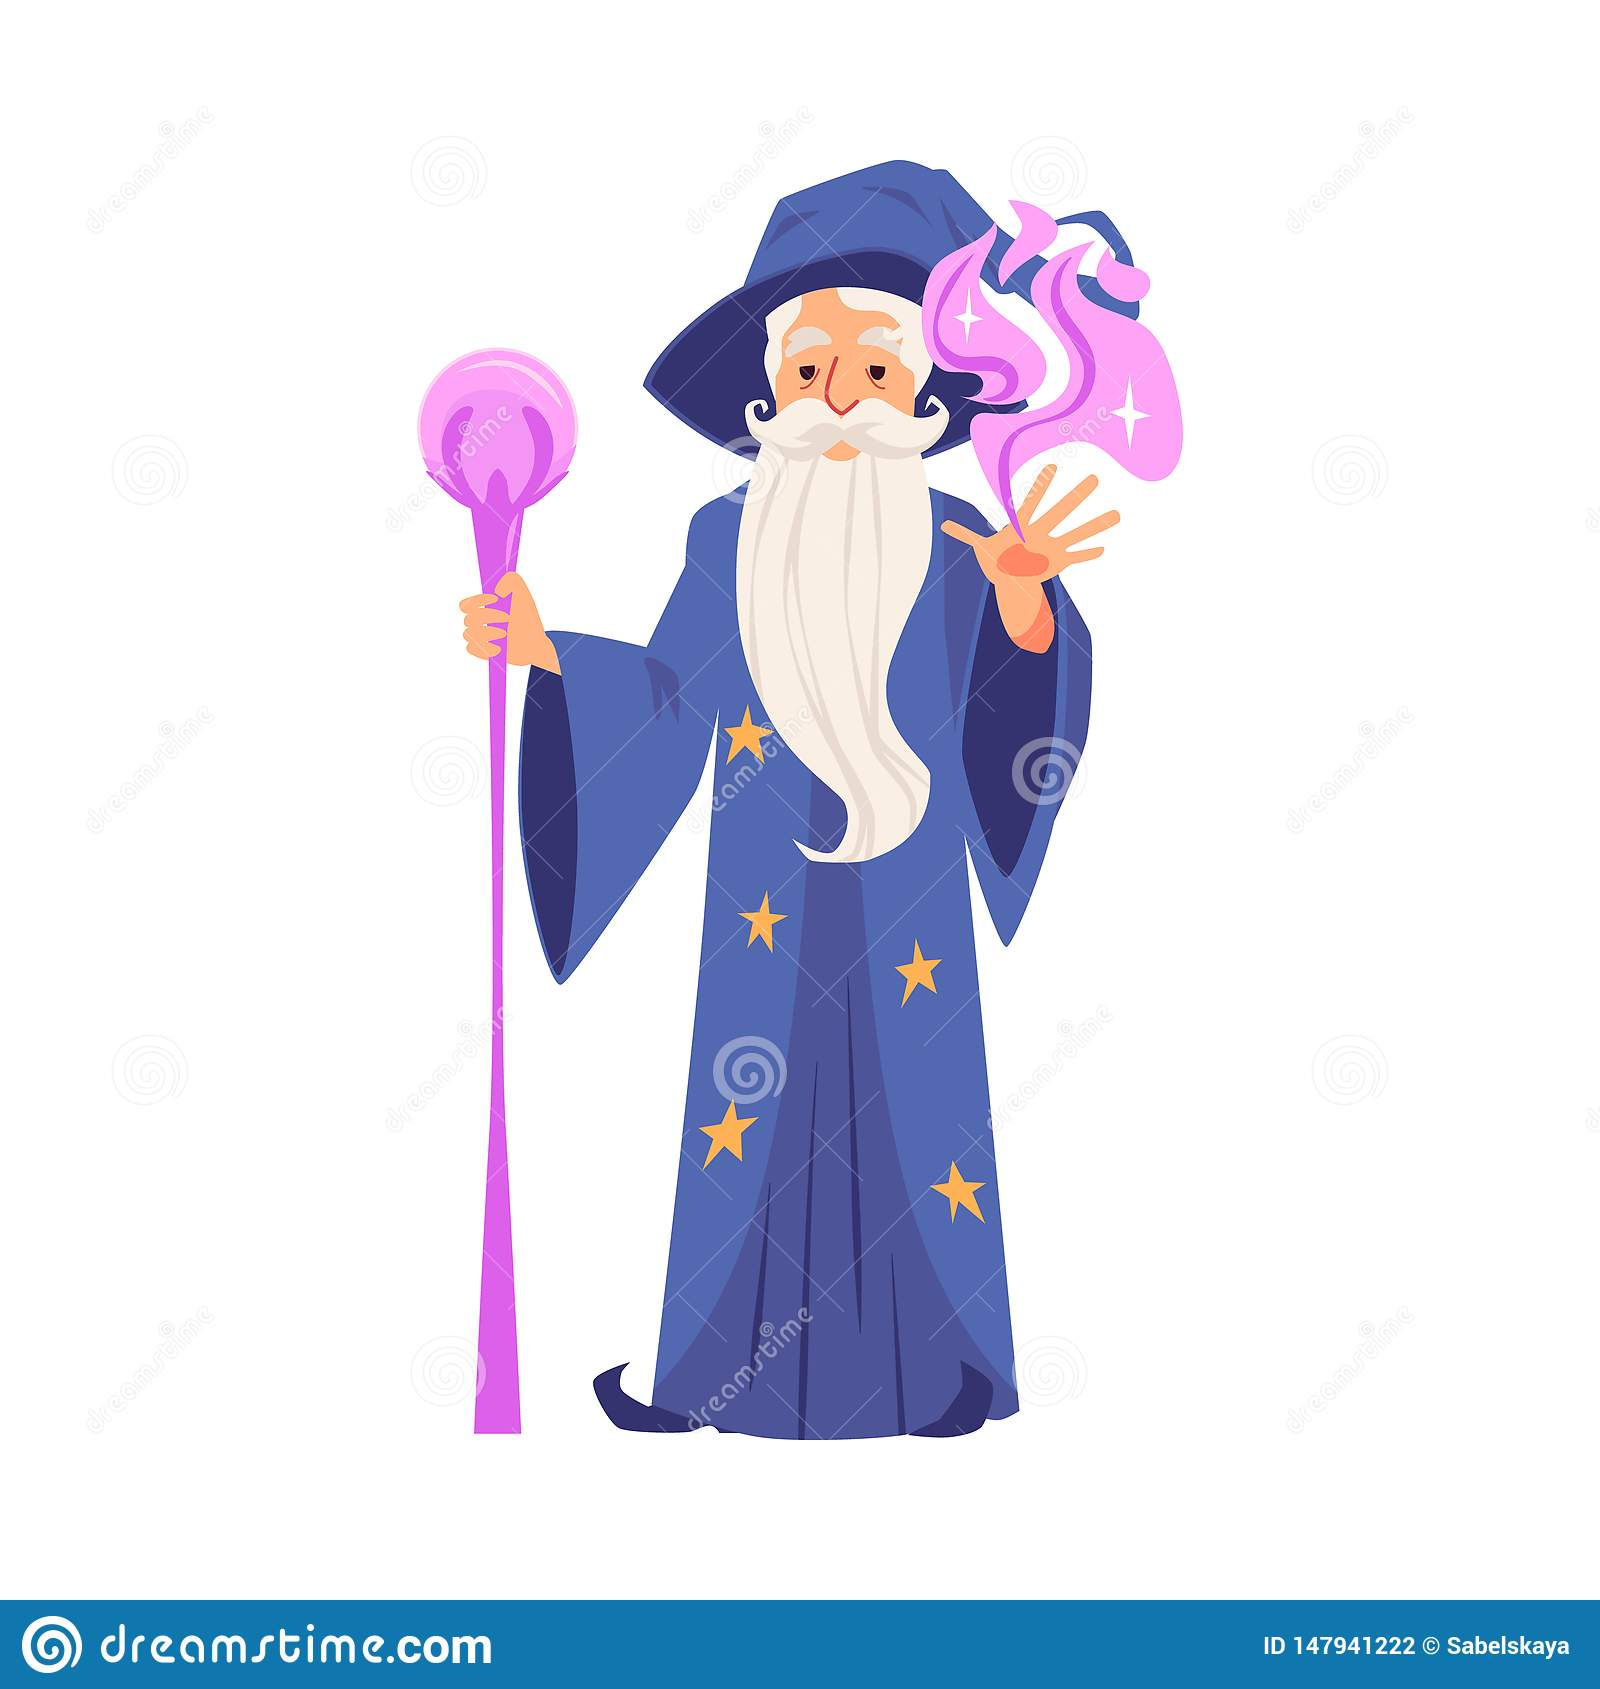 Wizard or magician creates magic flat vector illustration isolated on white.